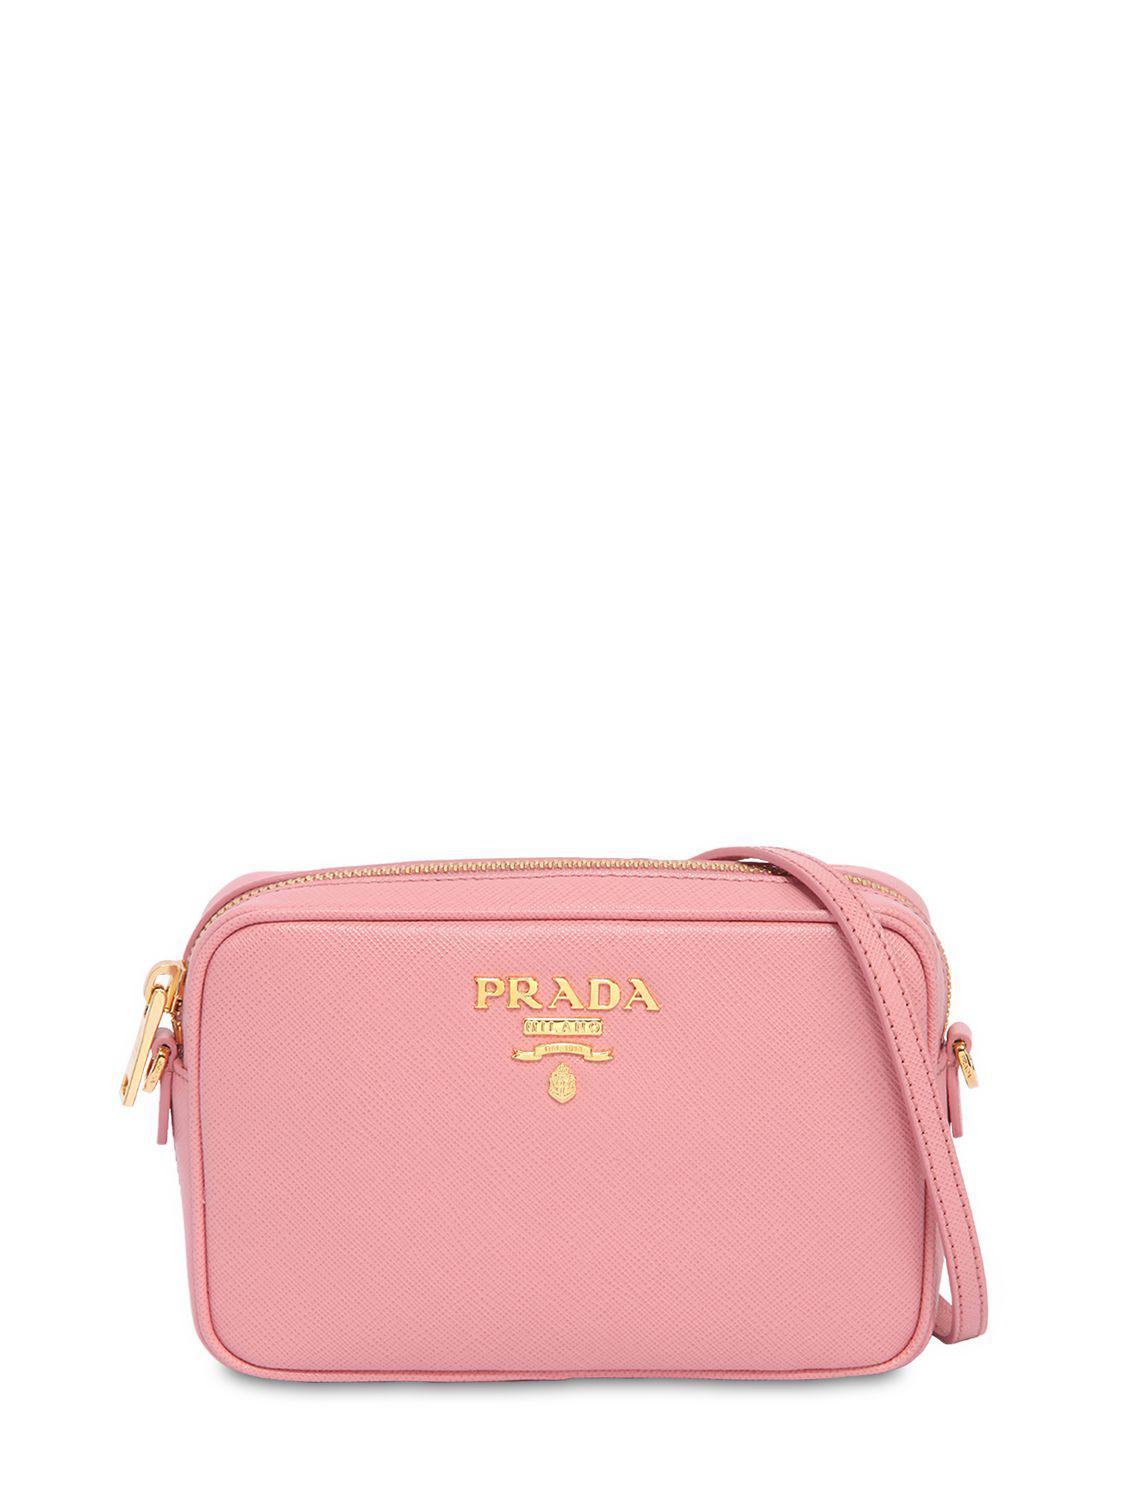 7fc5ad794 ... get lyst prada saffiano leather camera bag in pink d61eb 0059c ...